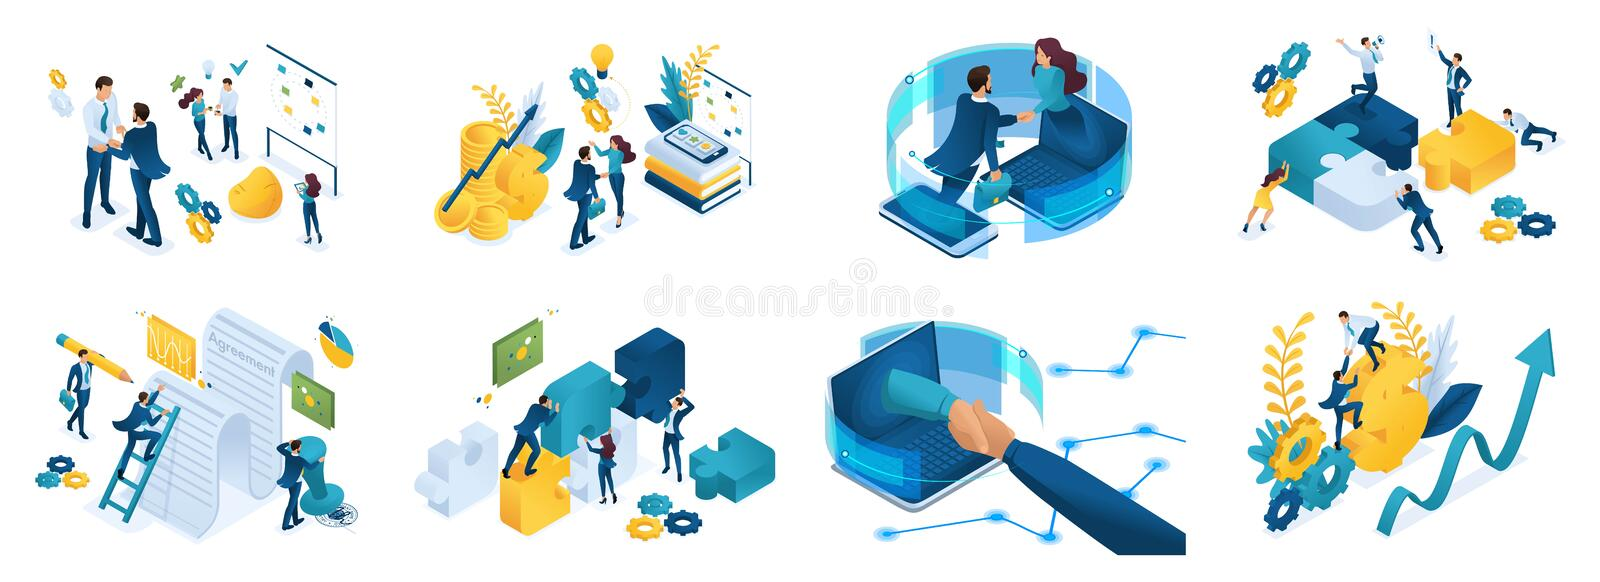 Isometric set of concepts on the topic of online cooperation, agreement, financing of projects, online consultation, partnership stock illustration